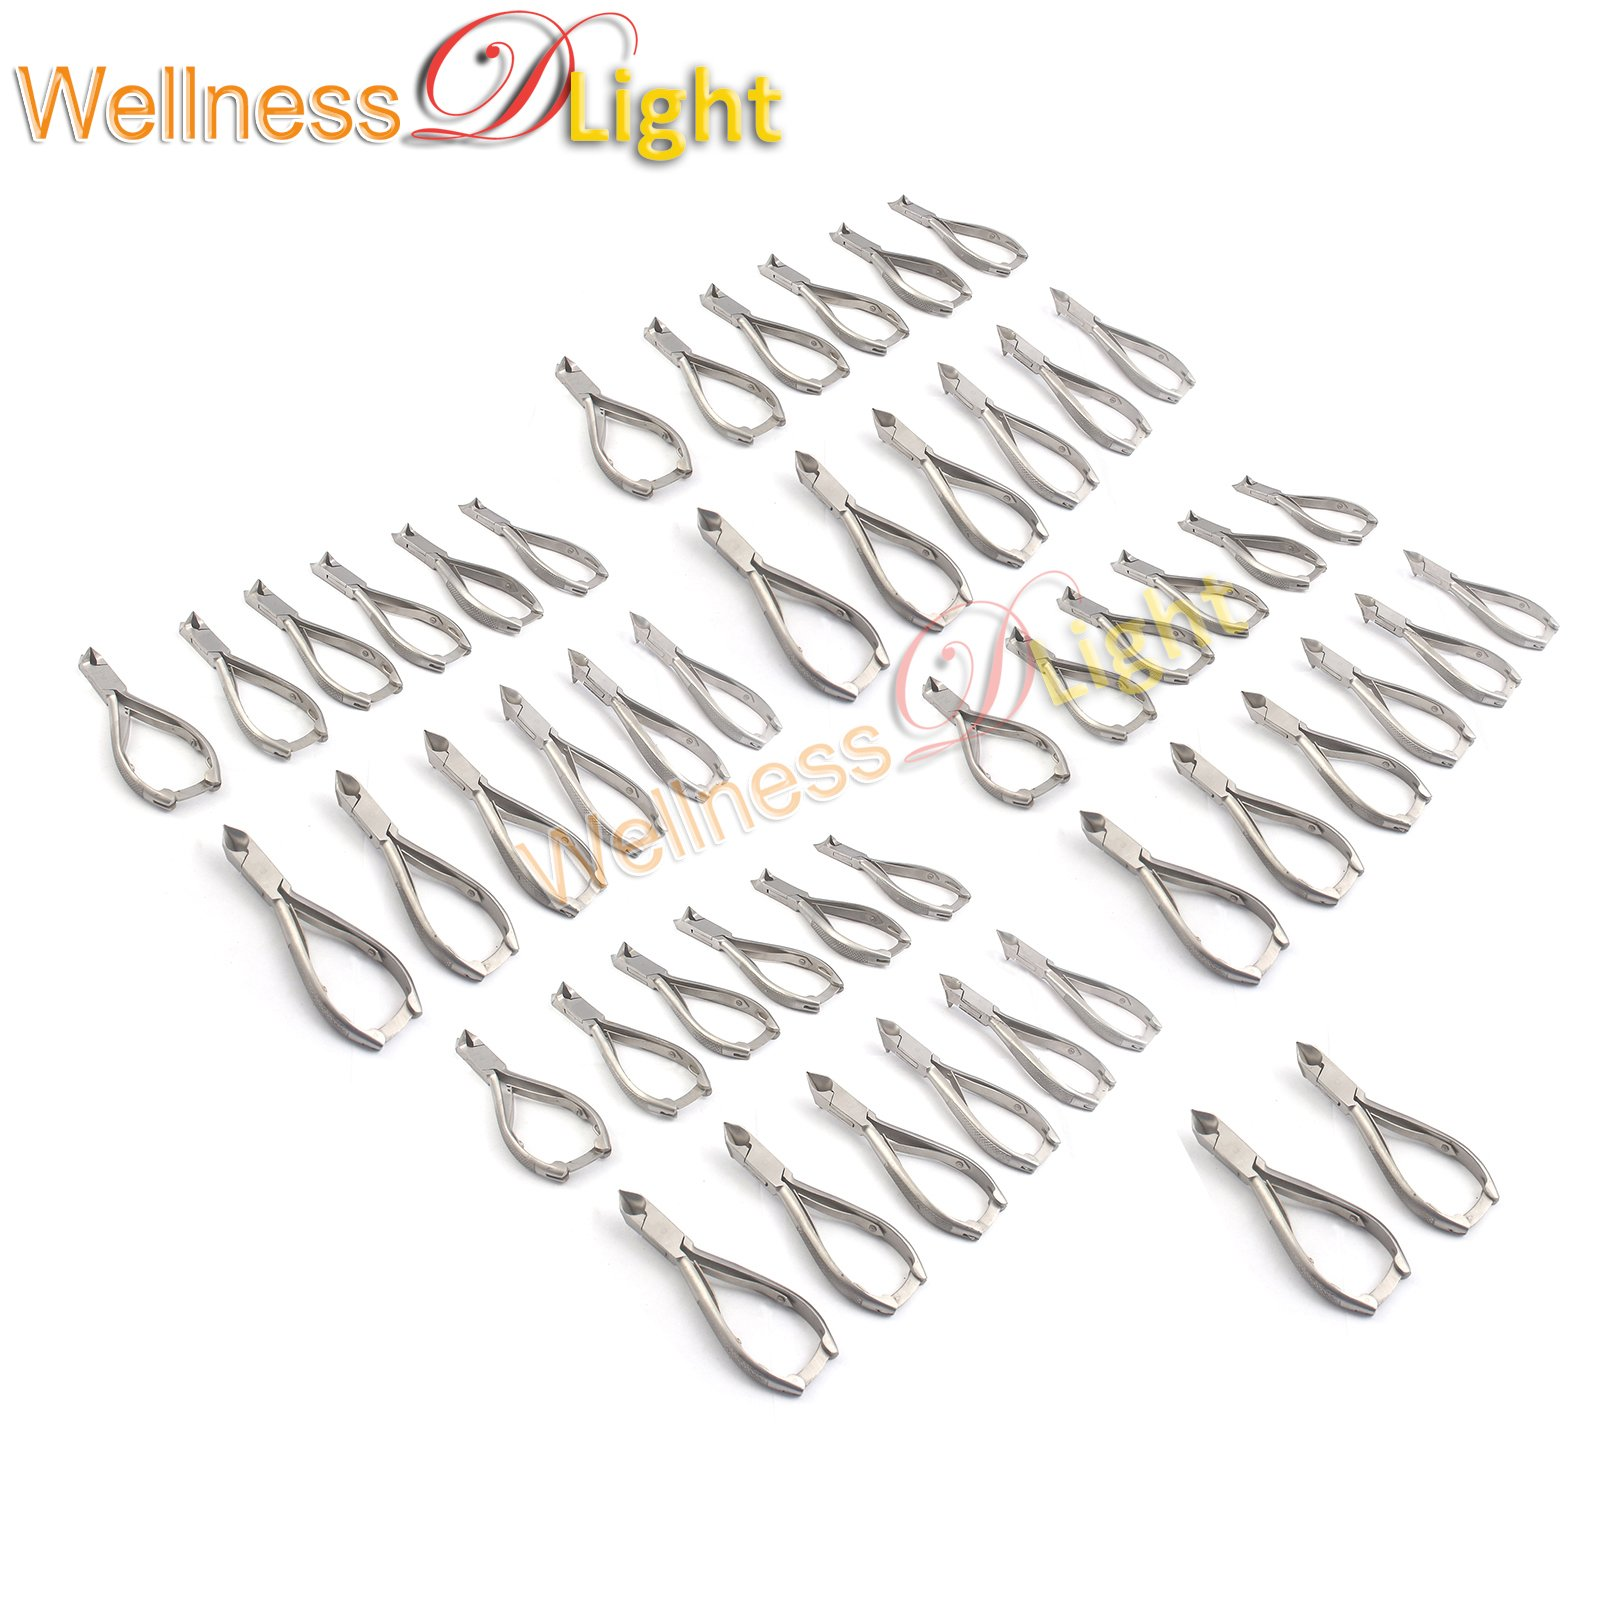 WDL SET OF 50 PROFESSIONAL MOON SHAPE TOENAIL CLIPPER CUTTER CHIROPODY PODIATRY INSTRUMENTS